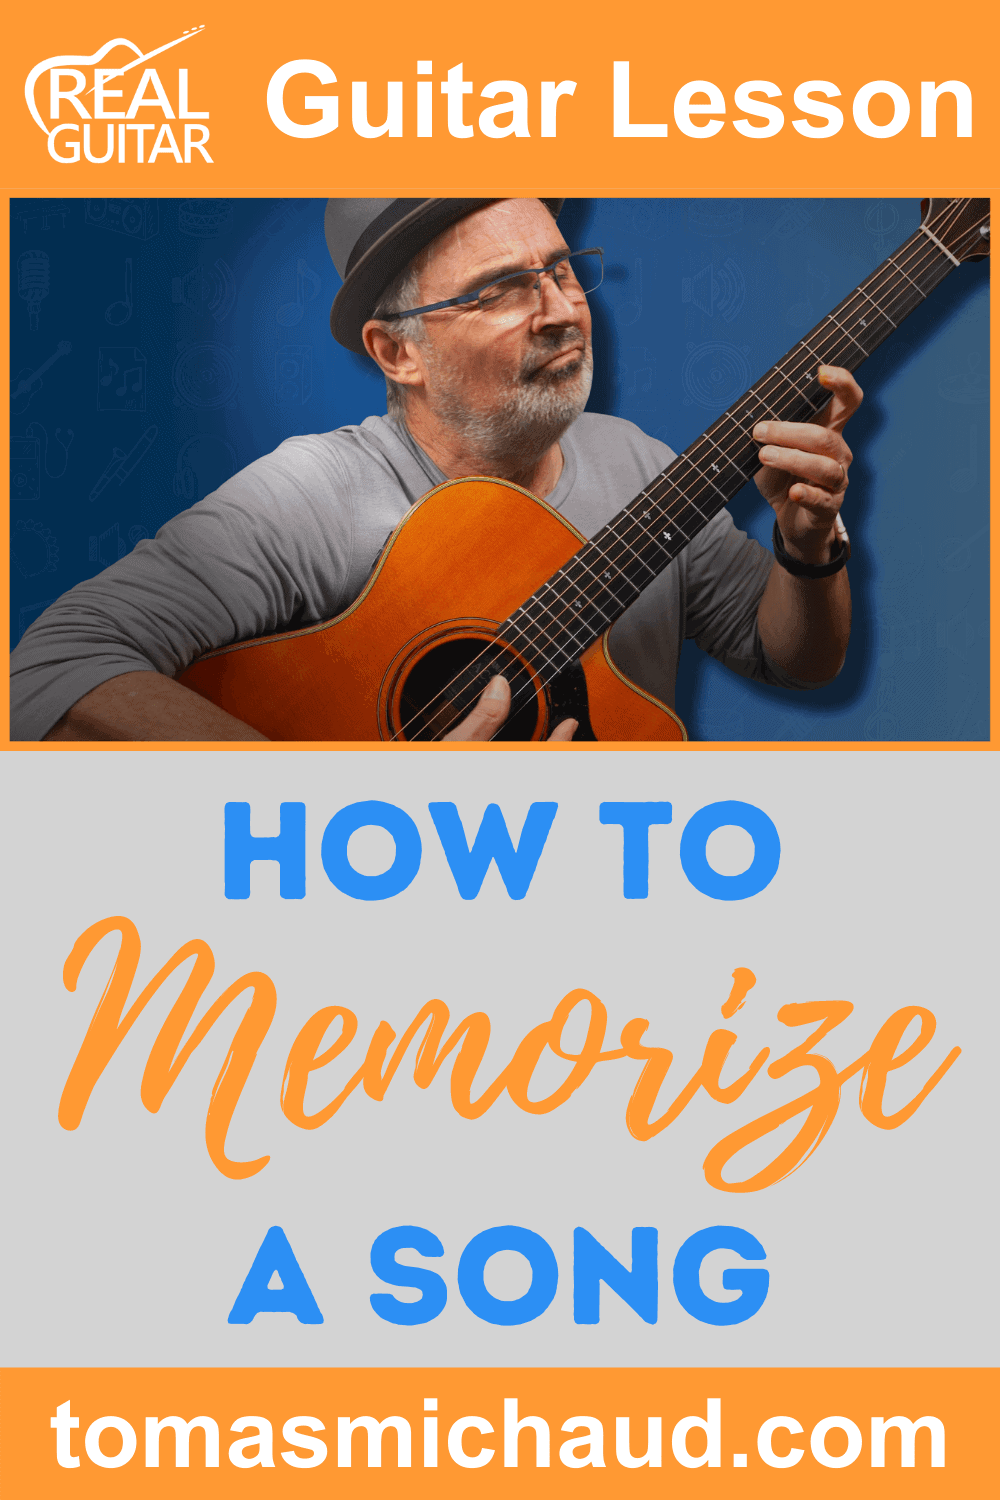 How To Memorize A Song On Guitar